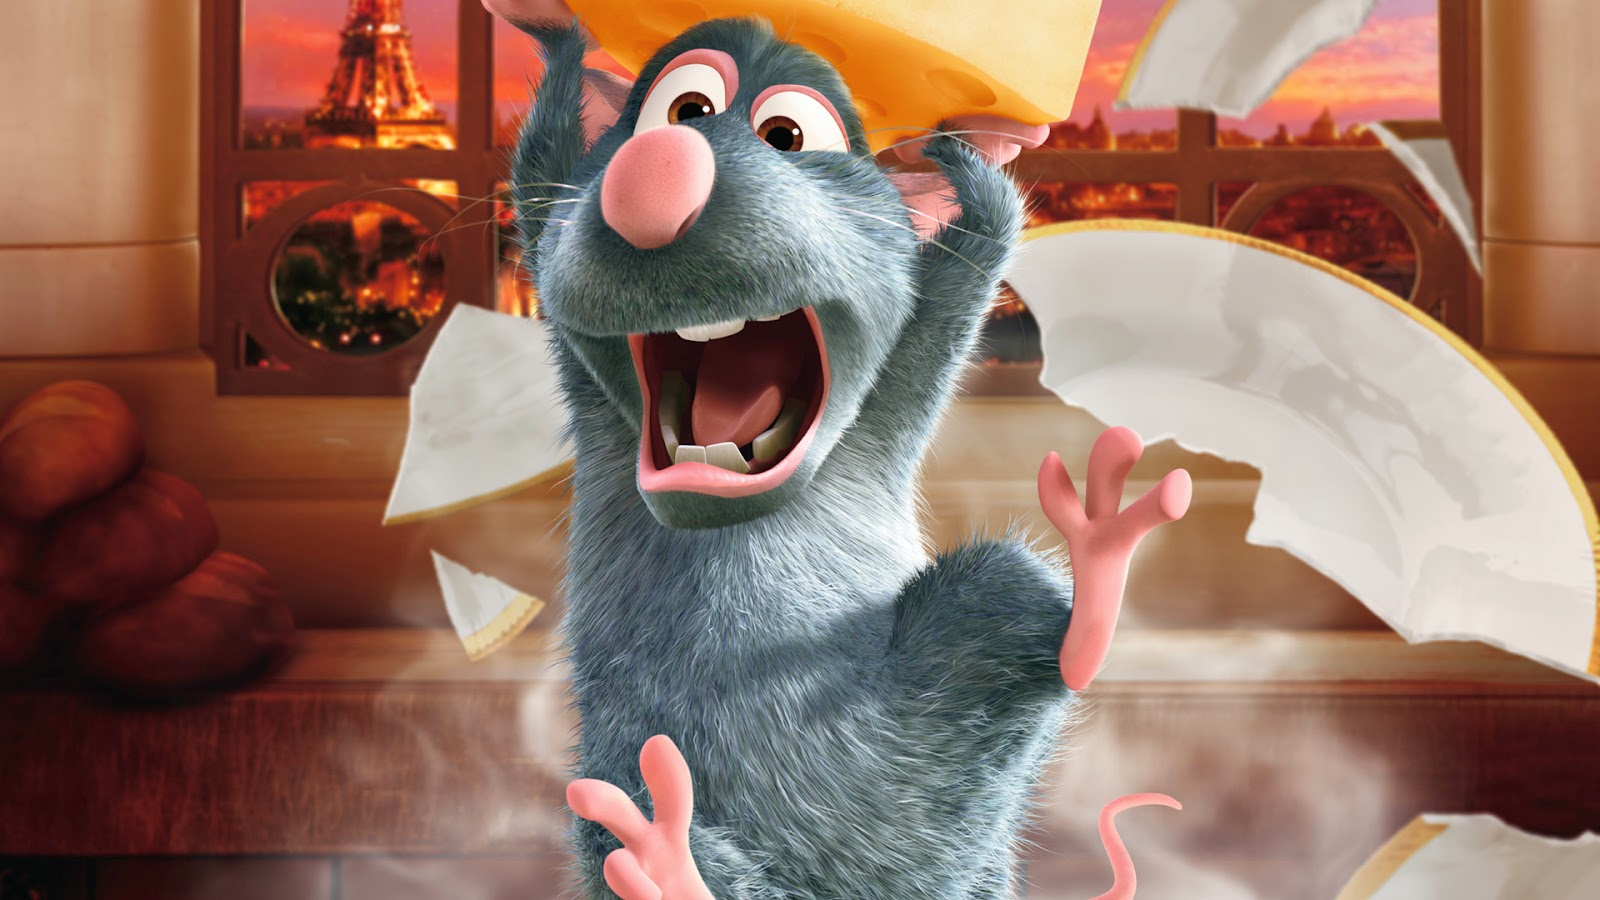 Ratatouille Pixar animatedfilmreviews.filminspector.com